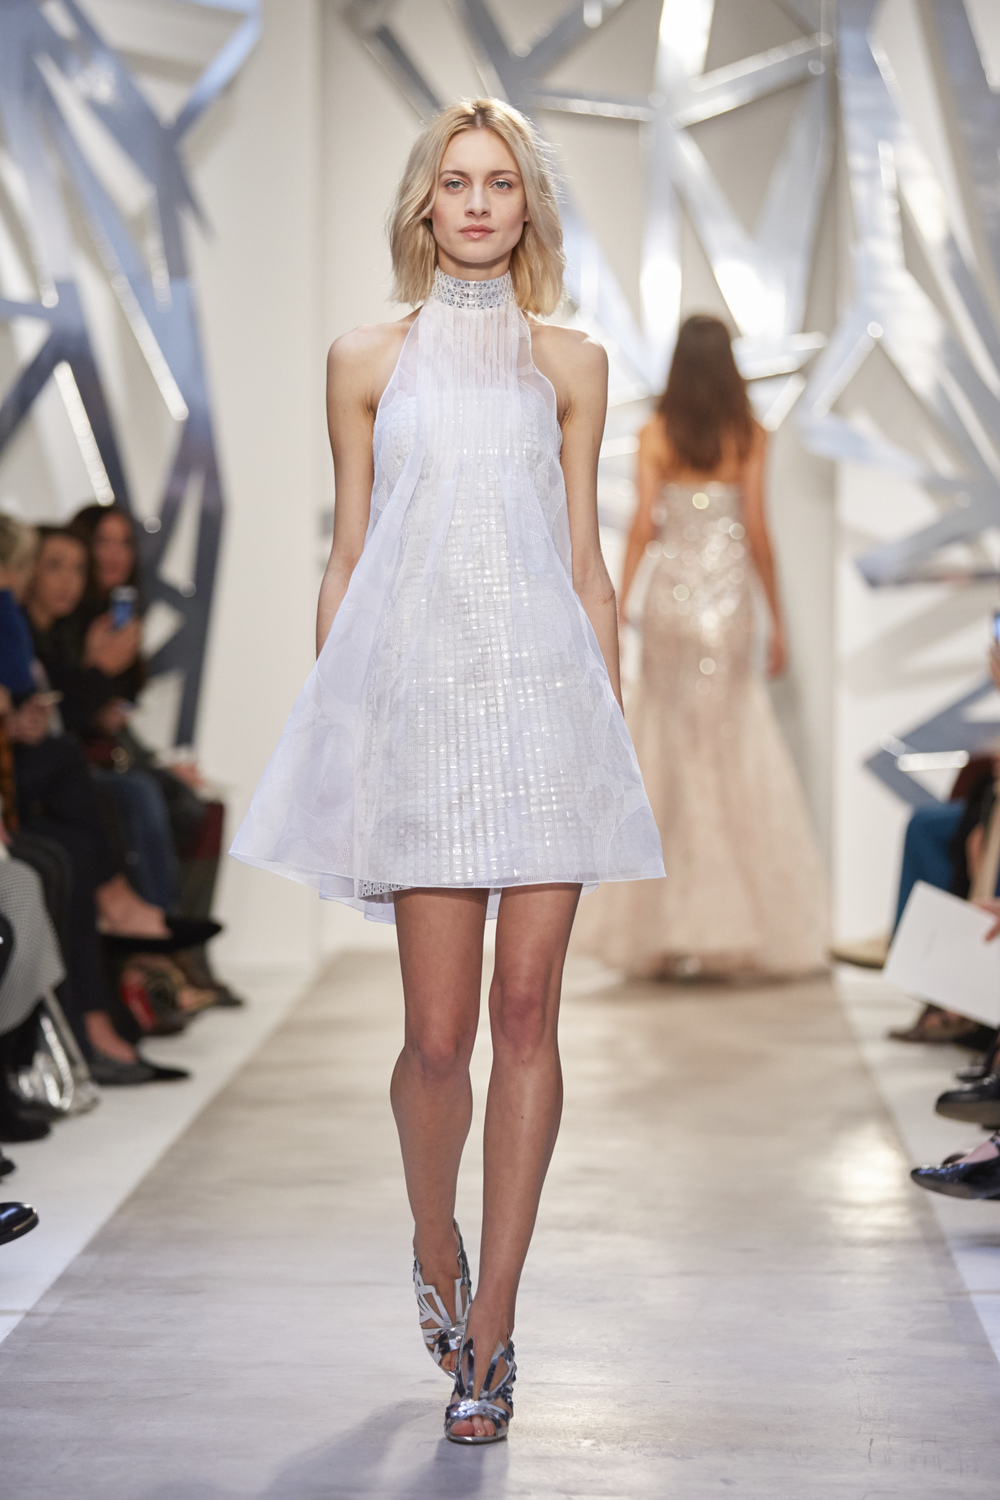 143-AZZARO-COUTURE-SS16-PHOTO-MOHAMED-KHALIL.jpg